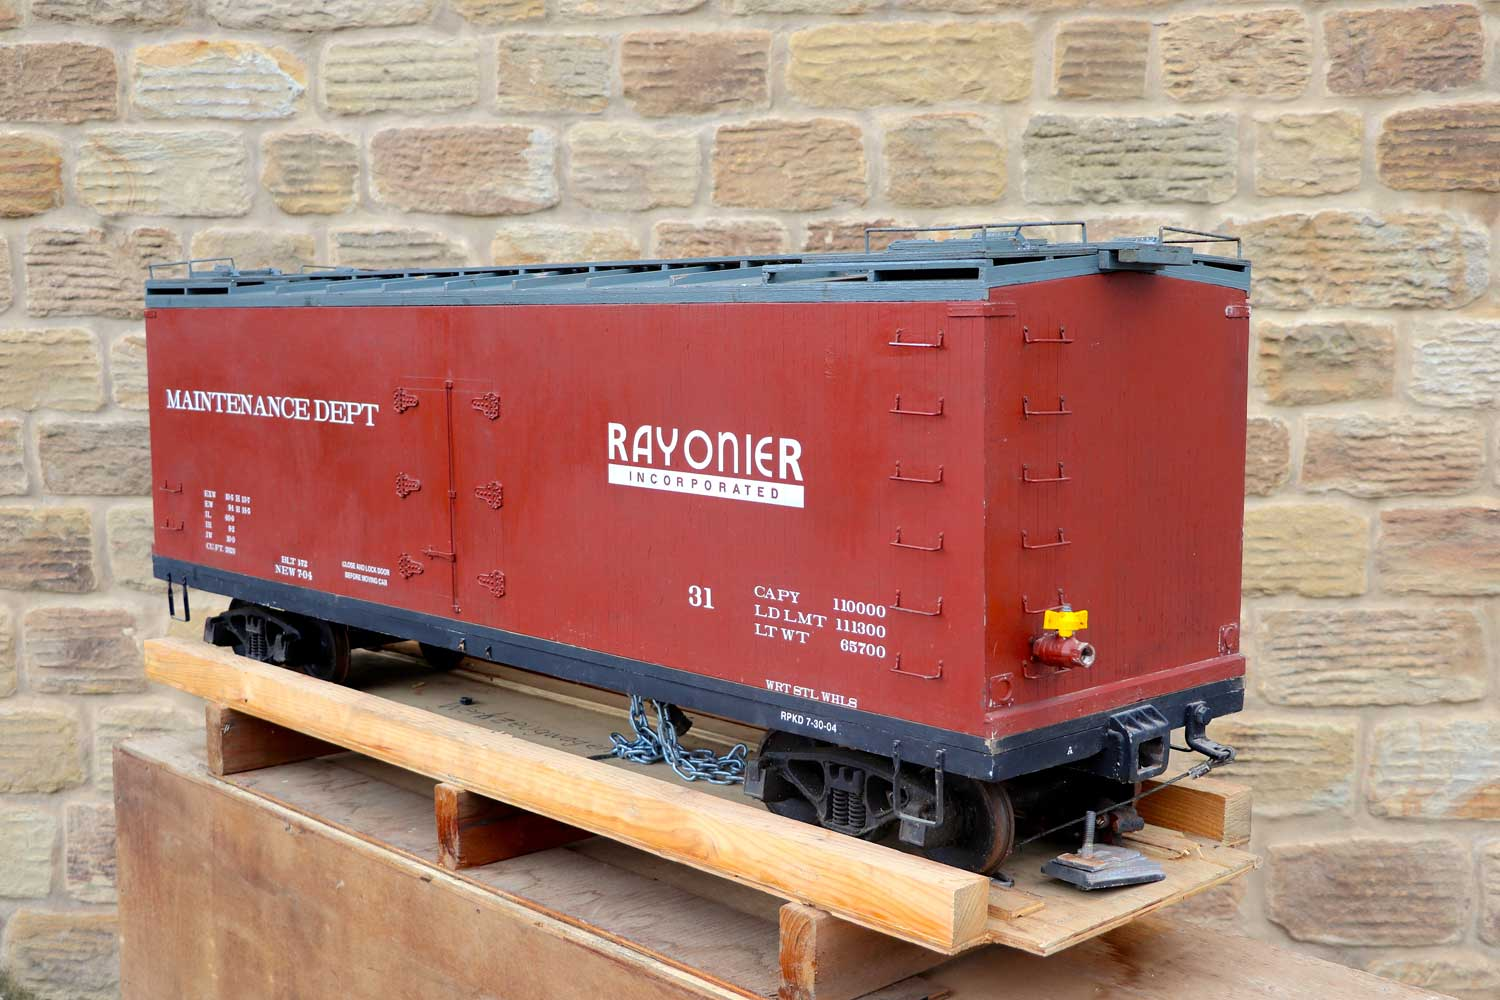 test 7-and-a-quarter-inch-brown-rayonier-hc-railroad-carriage-live-steam-for-sale-02